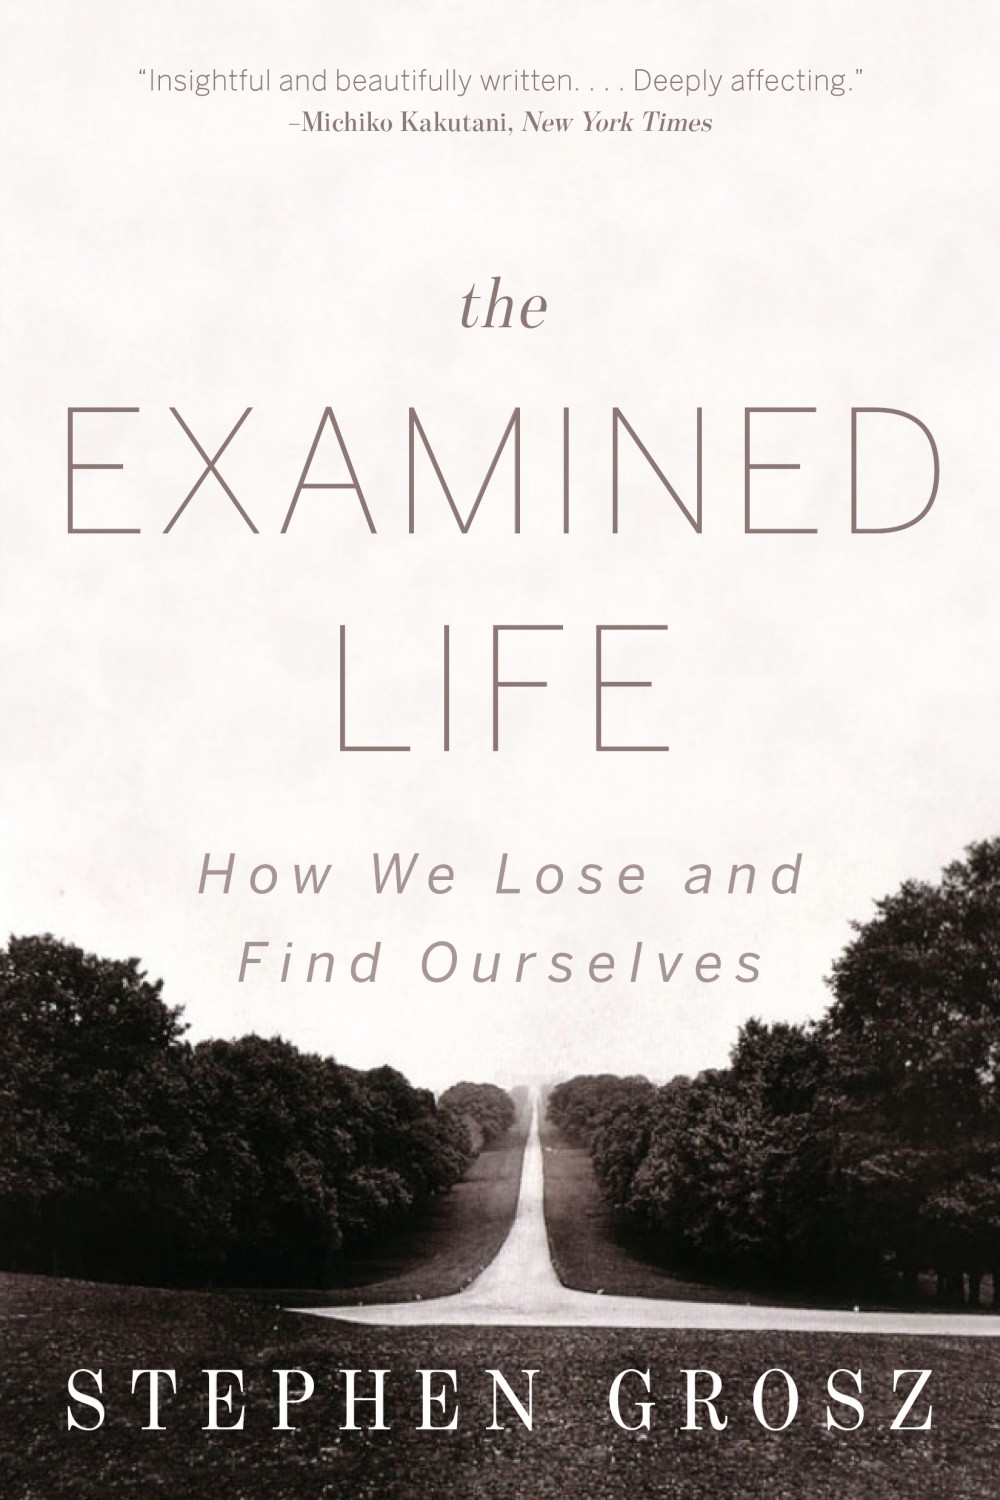 The Examined Life. How We Lose and Find Ourselves   Author: Stephen Grosz  Published by: Chatto and Windus  Genres: heatlh, self-help, philosophy   Available at: usa.stephengrosz.com